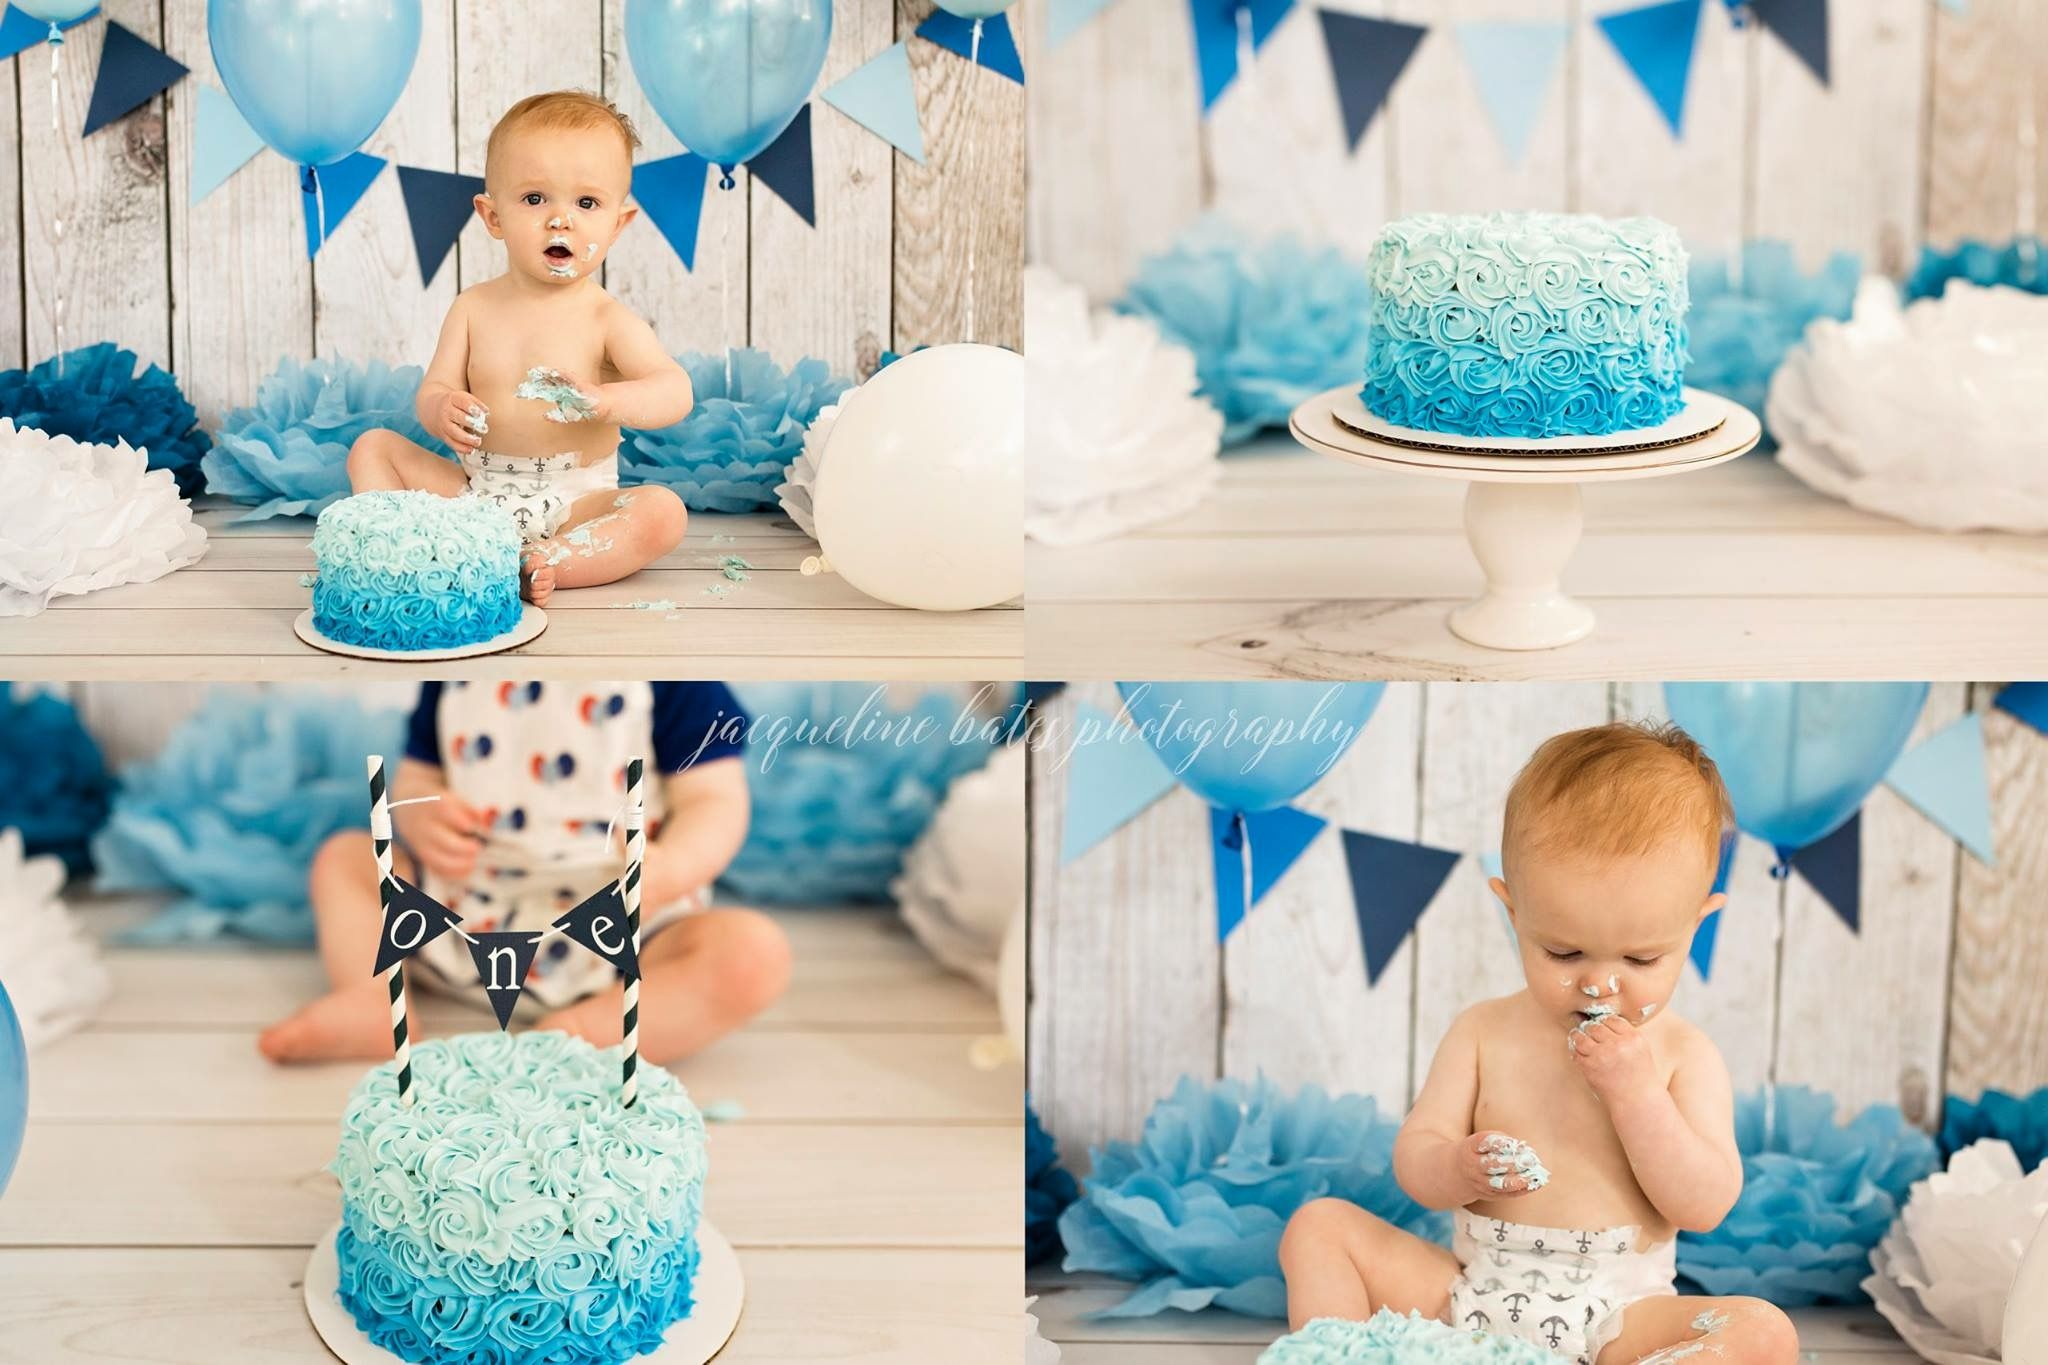 Baby Boy First Birthday Cake Smash Blue Ombre Rosette Cake With